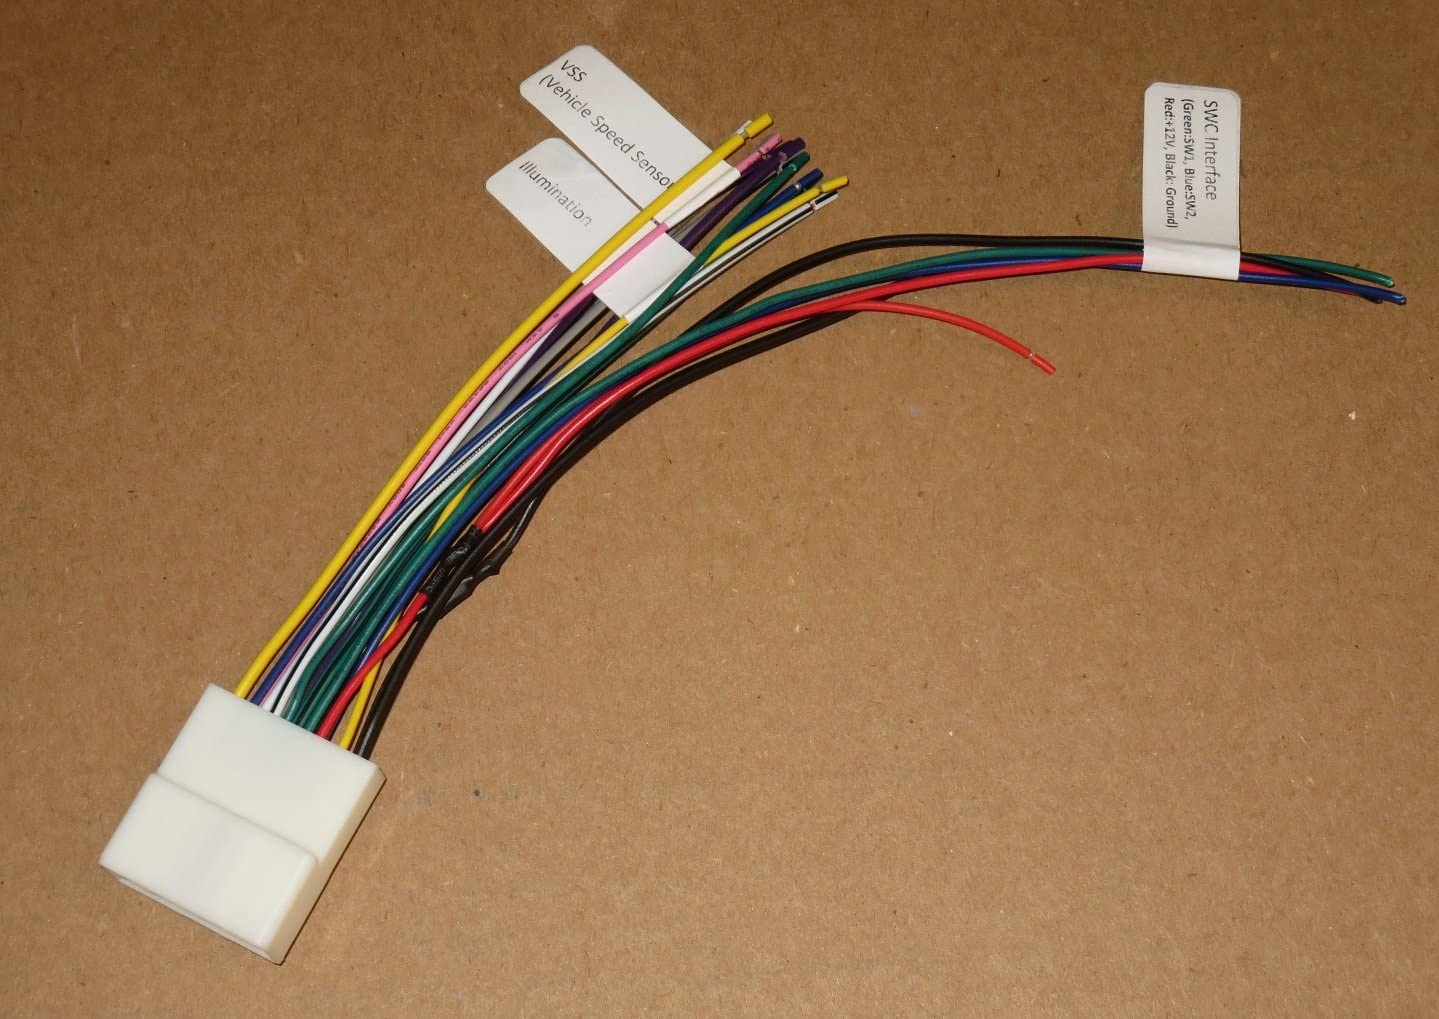 amazon.com: 20-pin headunit/radio wiring harness compatible with subaru/nissan  (with steering wheel switch wires): car electronics  amazon.com